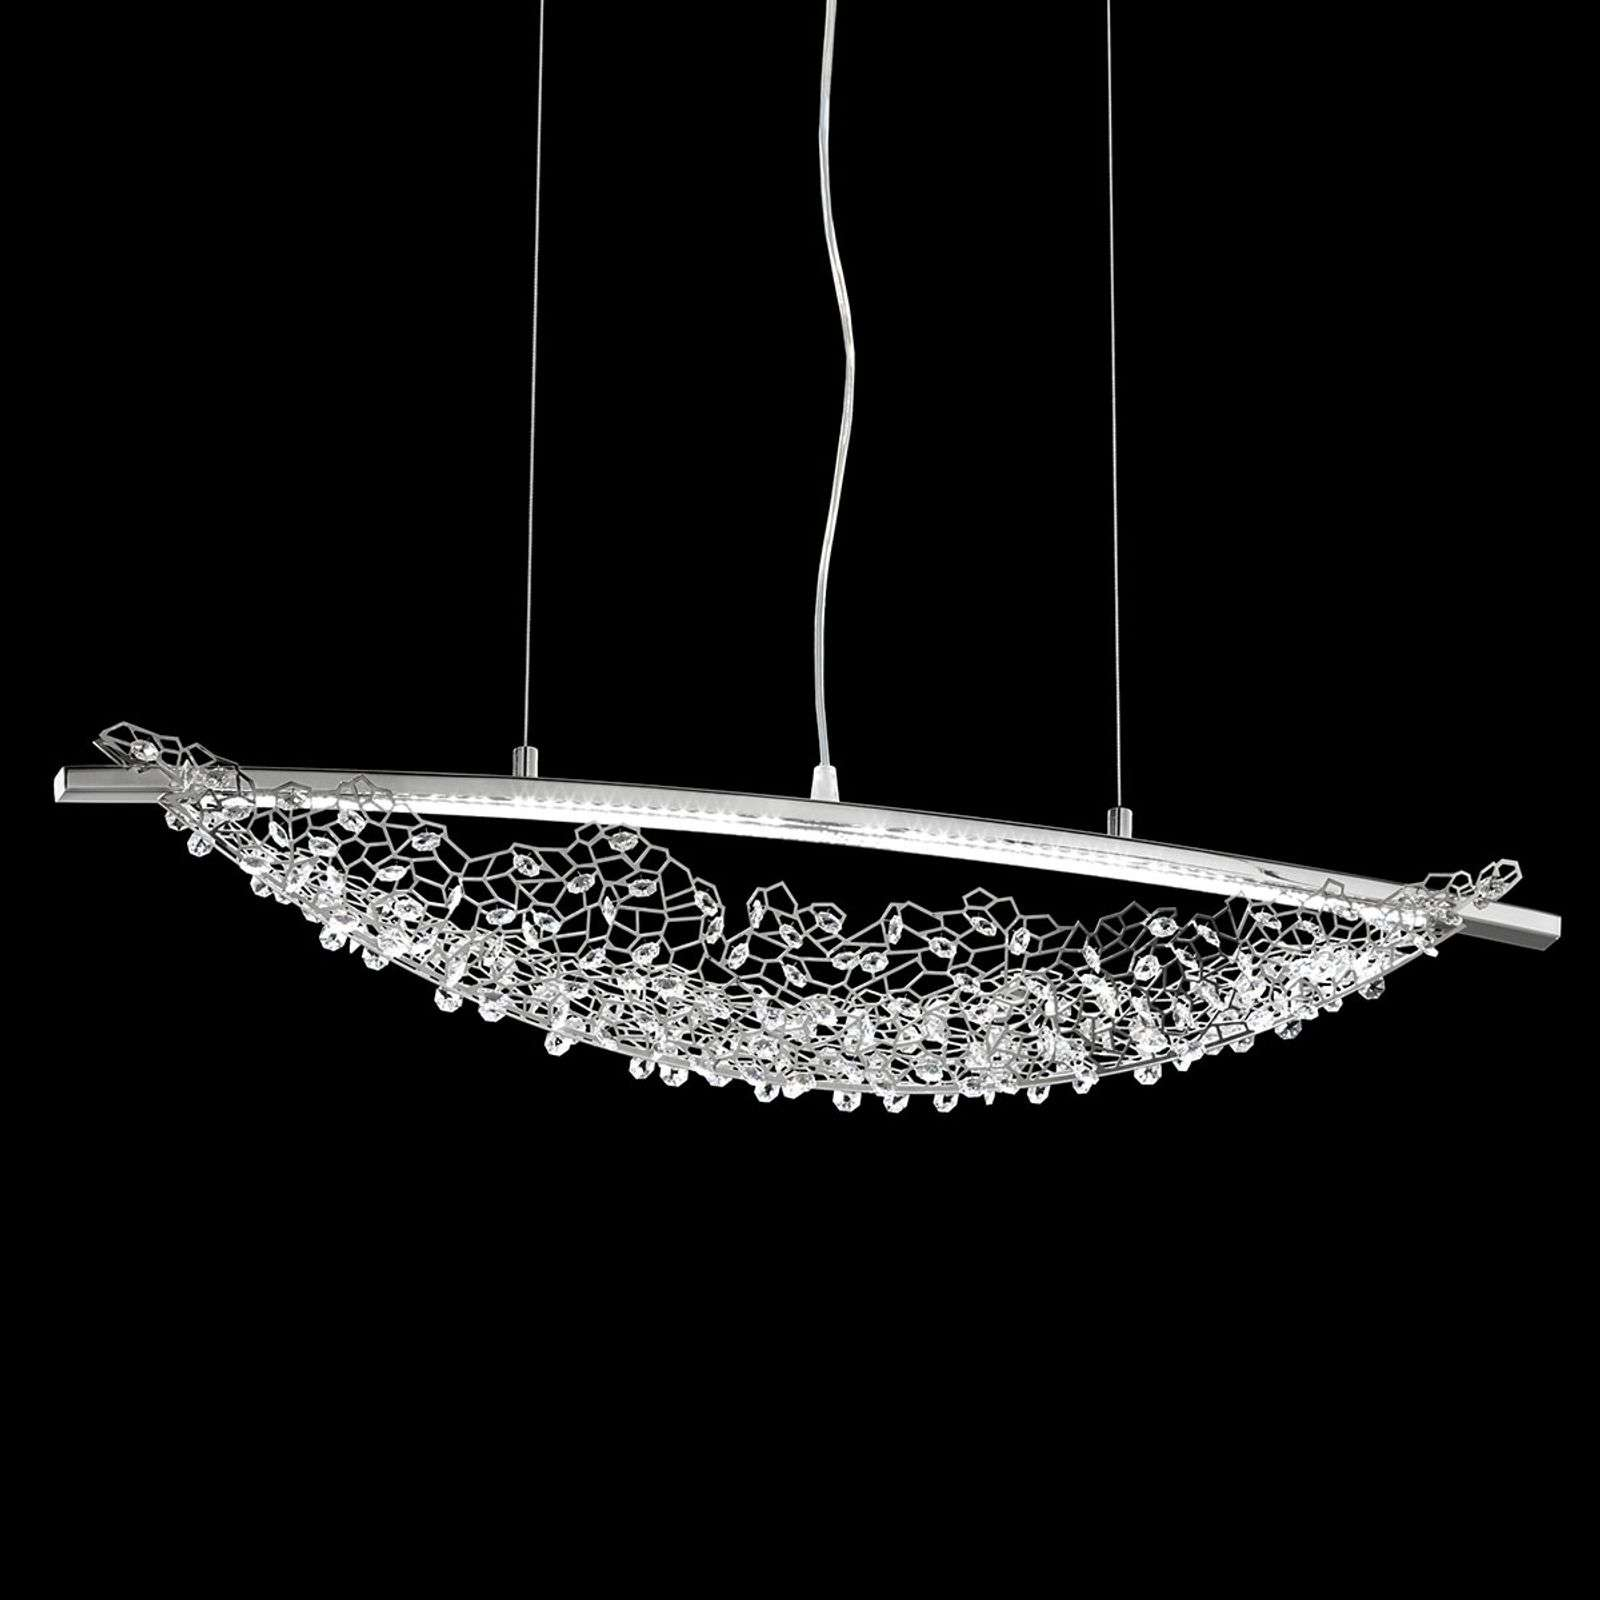 Suspension LED Amaca avec Swarovski, 76 cm